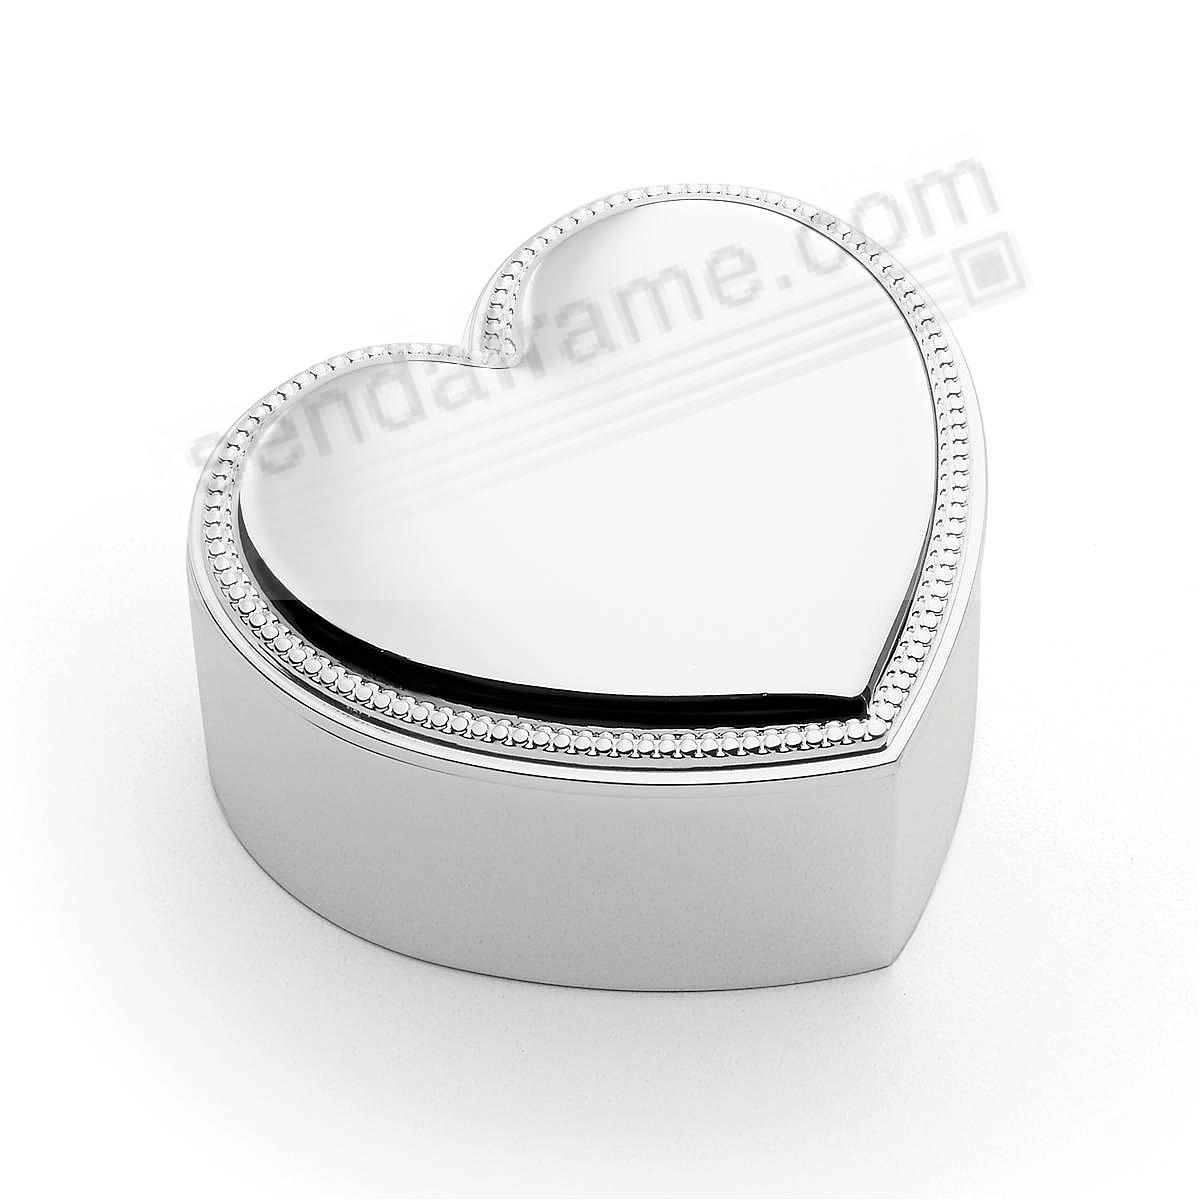 PRECIOUS HEART COVERED BOX by Reed & Barton®